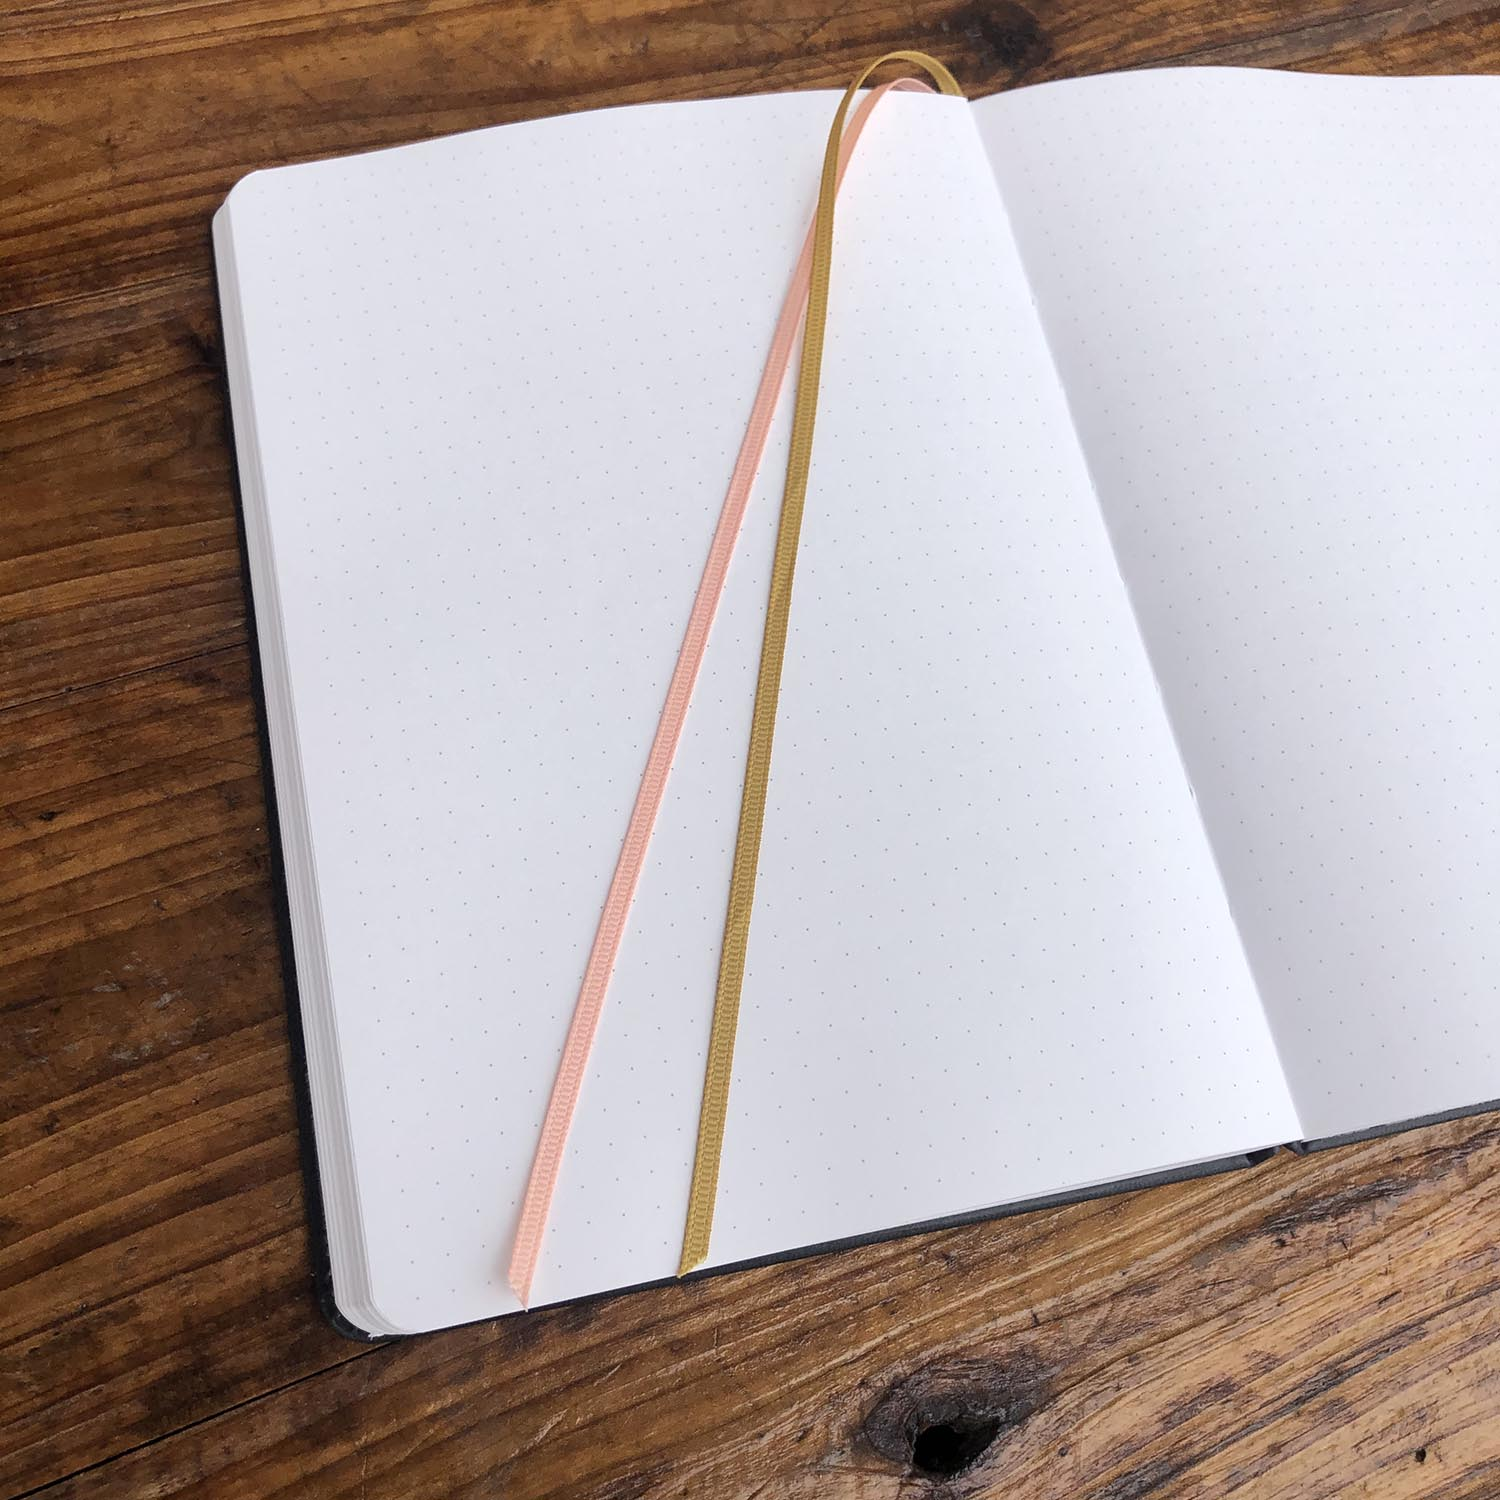 2021 Bullet Planner Dotted Notebook Dot Grid  Journal to Increase Productivity, Passion, Purpose & Happiness 2